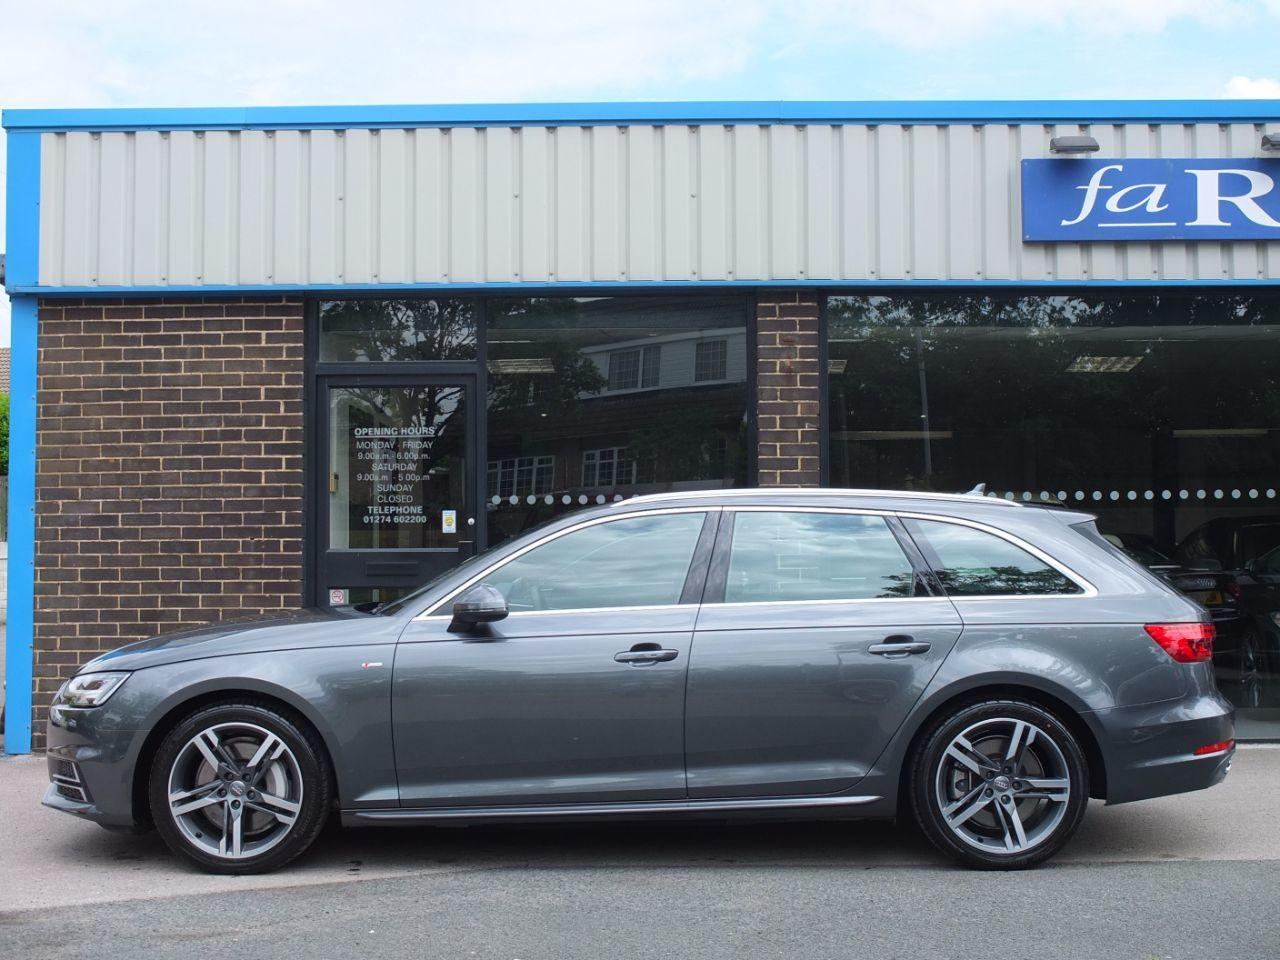 Audi A4 Avant 3.0 TDI 272ps quattro S Line Tiptronic New Model (Tech Pack +++) Estate Diesel Daytona Grey Metallic